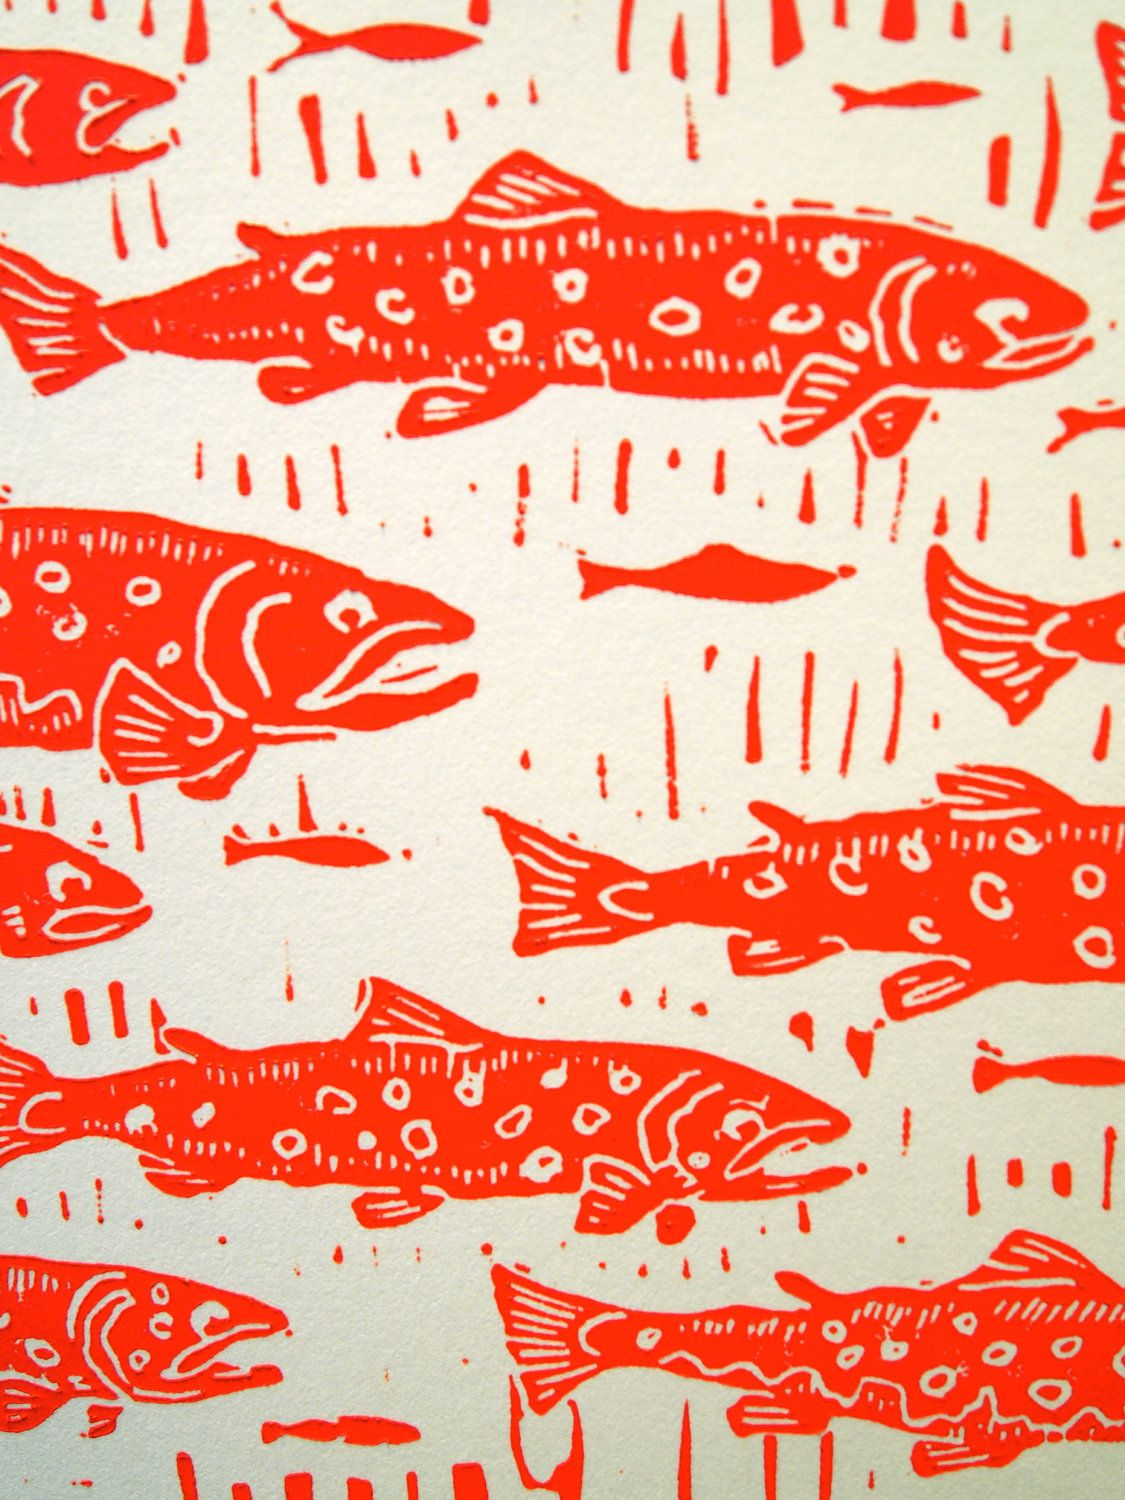 Trout on the walls | PATTERN | Pinterest | Trout, Fish and Fish art